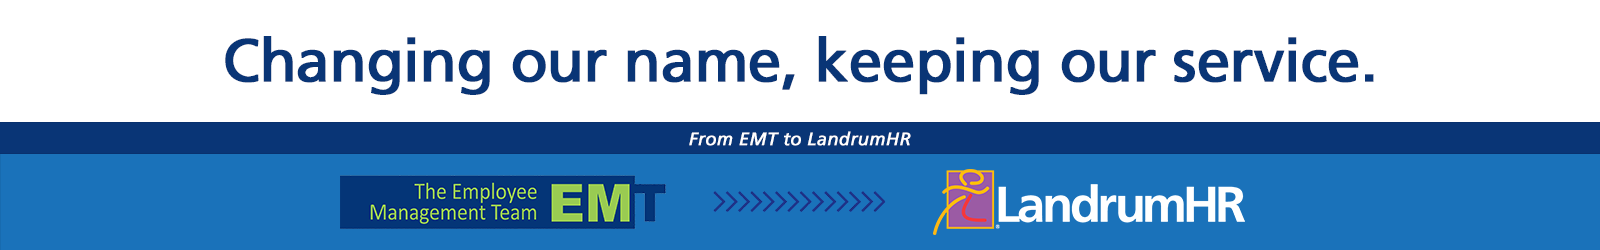 EMT is now LandrumHR